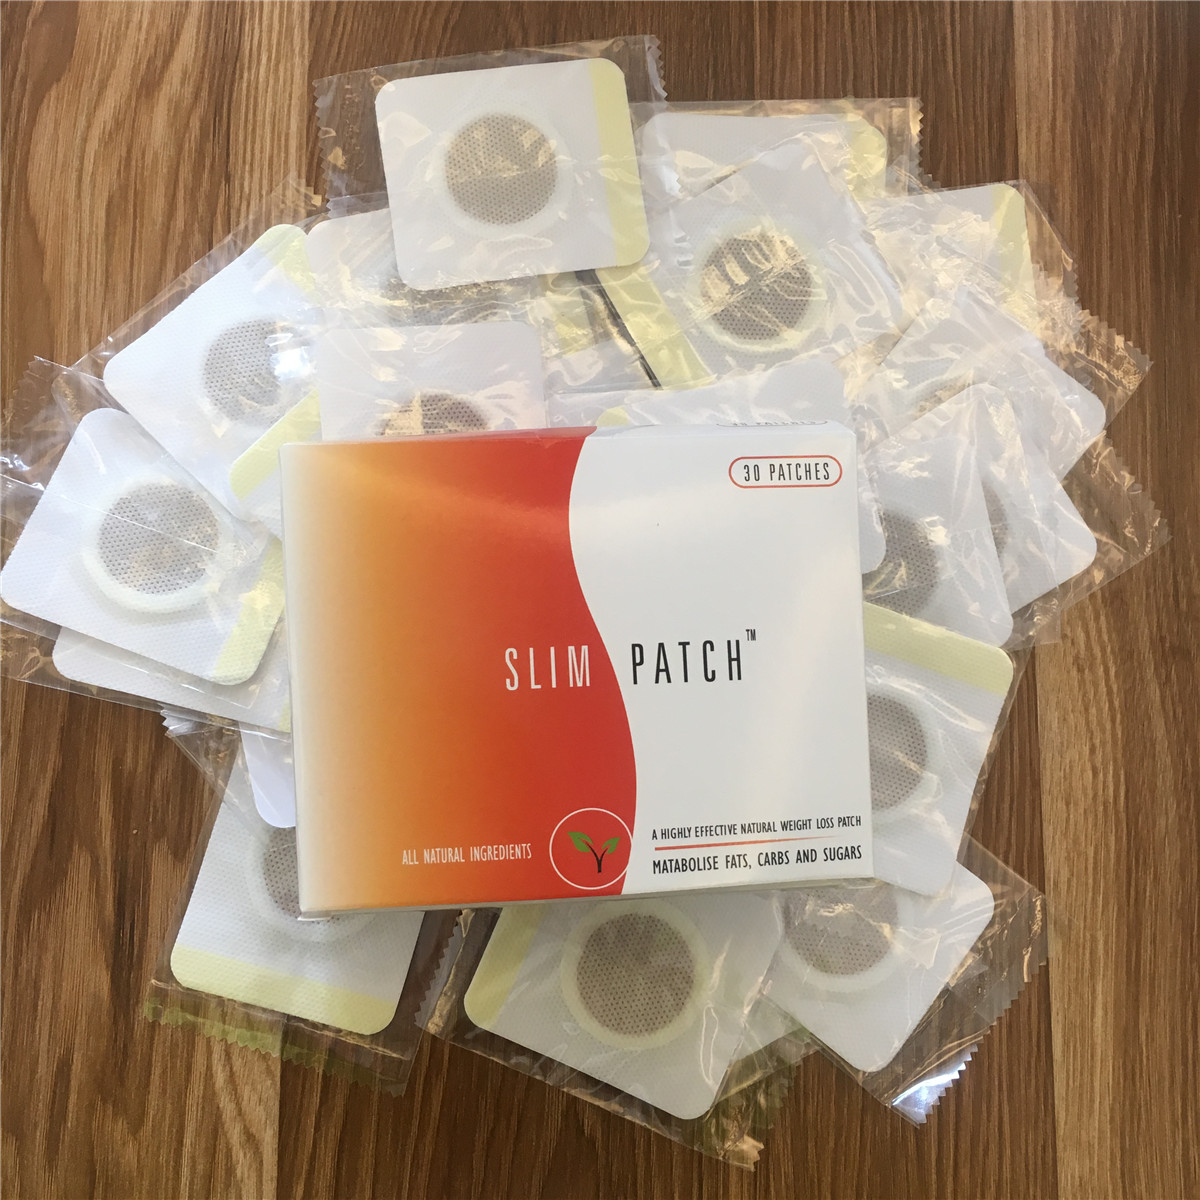 30pcs Slim Patch Stomach Fat Burning Navel Stick Slimming Weight Loss Burn Fat Anti Cellulite Cream Parches Adesivo Emagrecedor30pcs Slim Patch Stomach Fat Burning Navel Stick Slimming Weight Loss Burn Fat Anti Cellulite Cream Parches Adesivo Emagrecedor